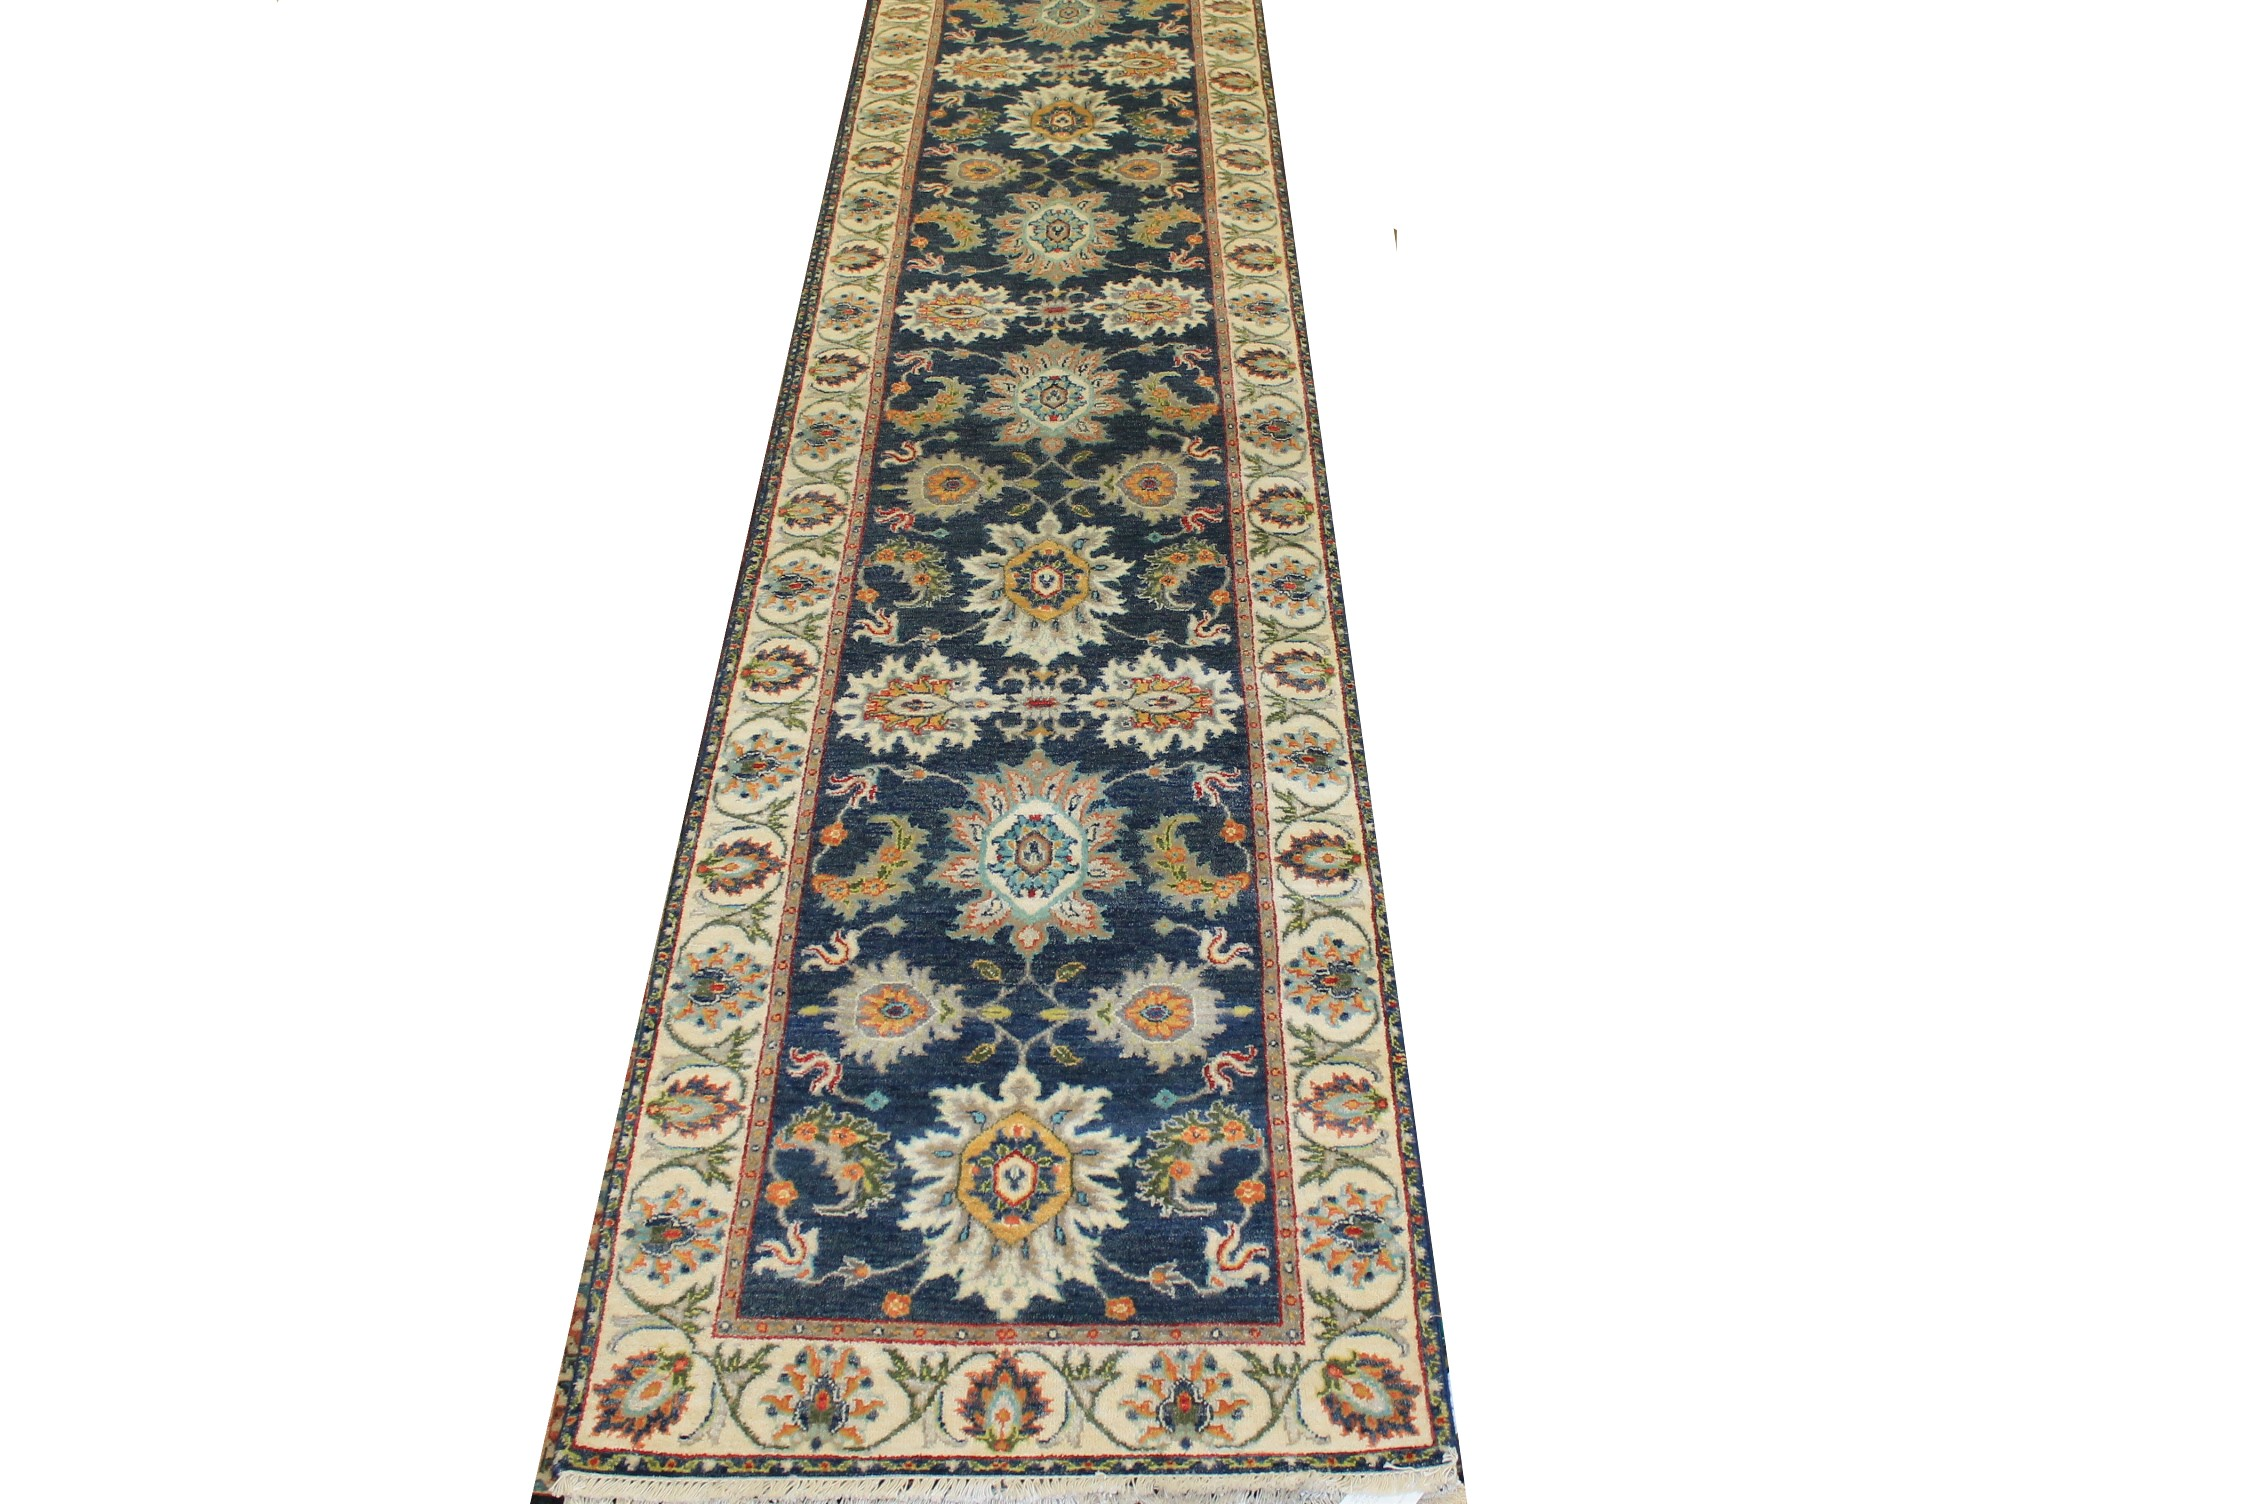 12 ft. Runner Traditional Hand Knotted Wool Area Rug - MR025009